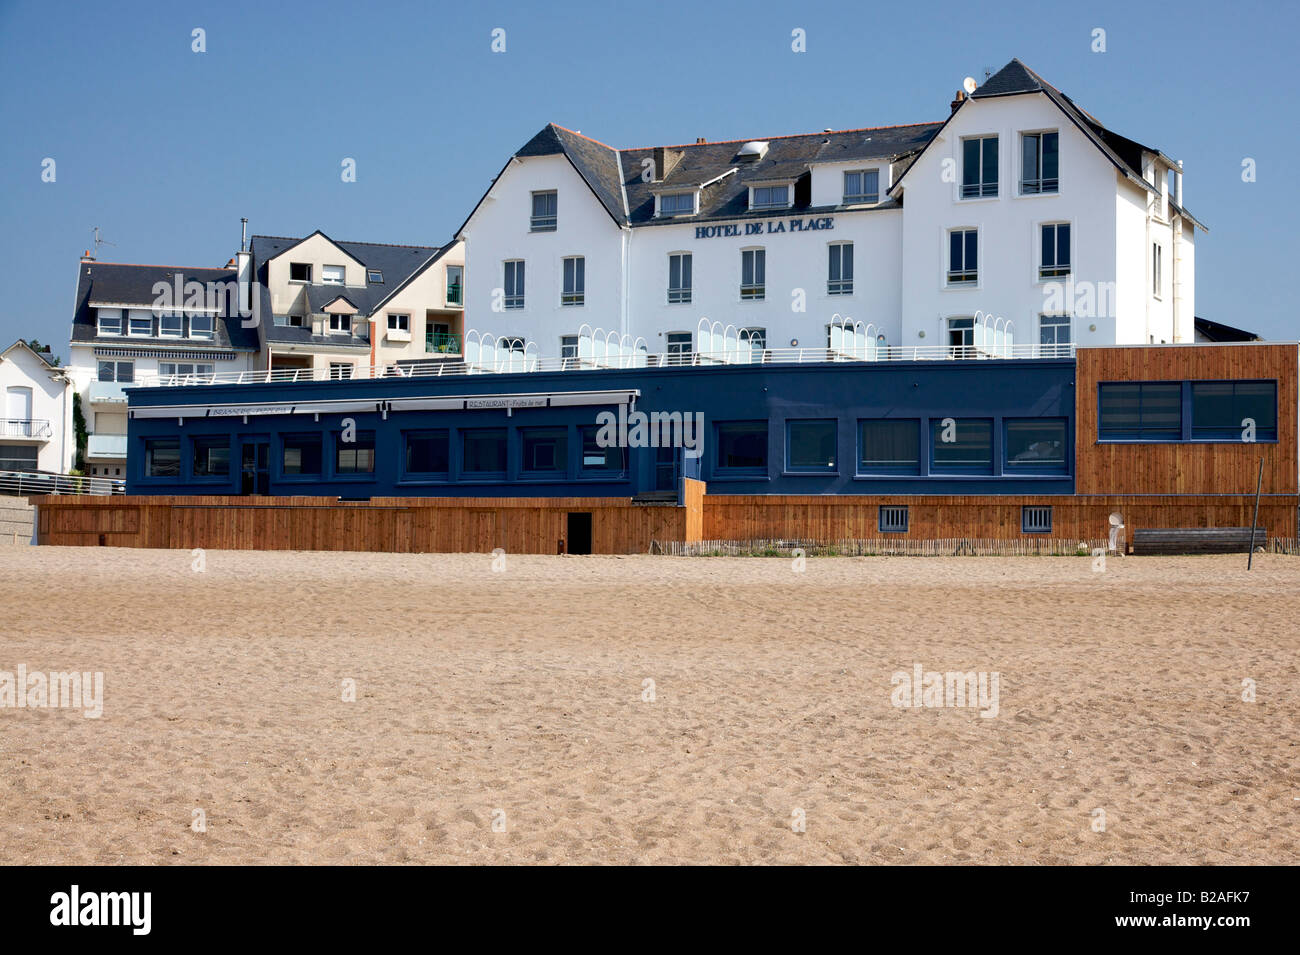 Hotel de La Plage in Saint Marc Sur Mer, film location for Les Vacances de Monsieur Hulot by Jacques Tati - Stock Image